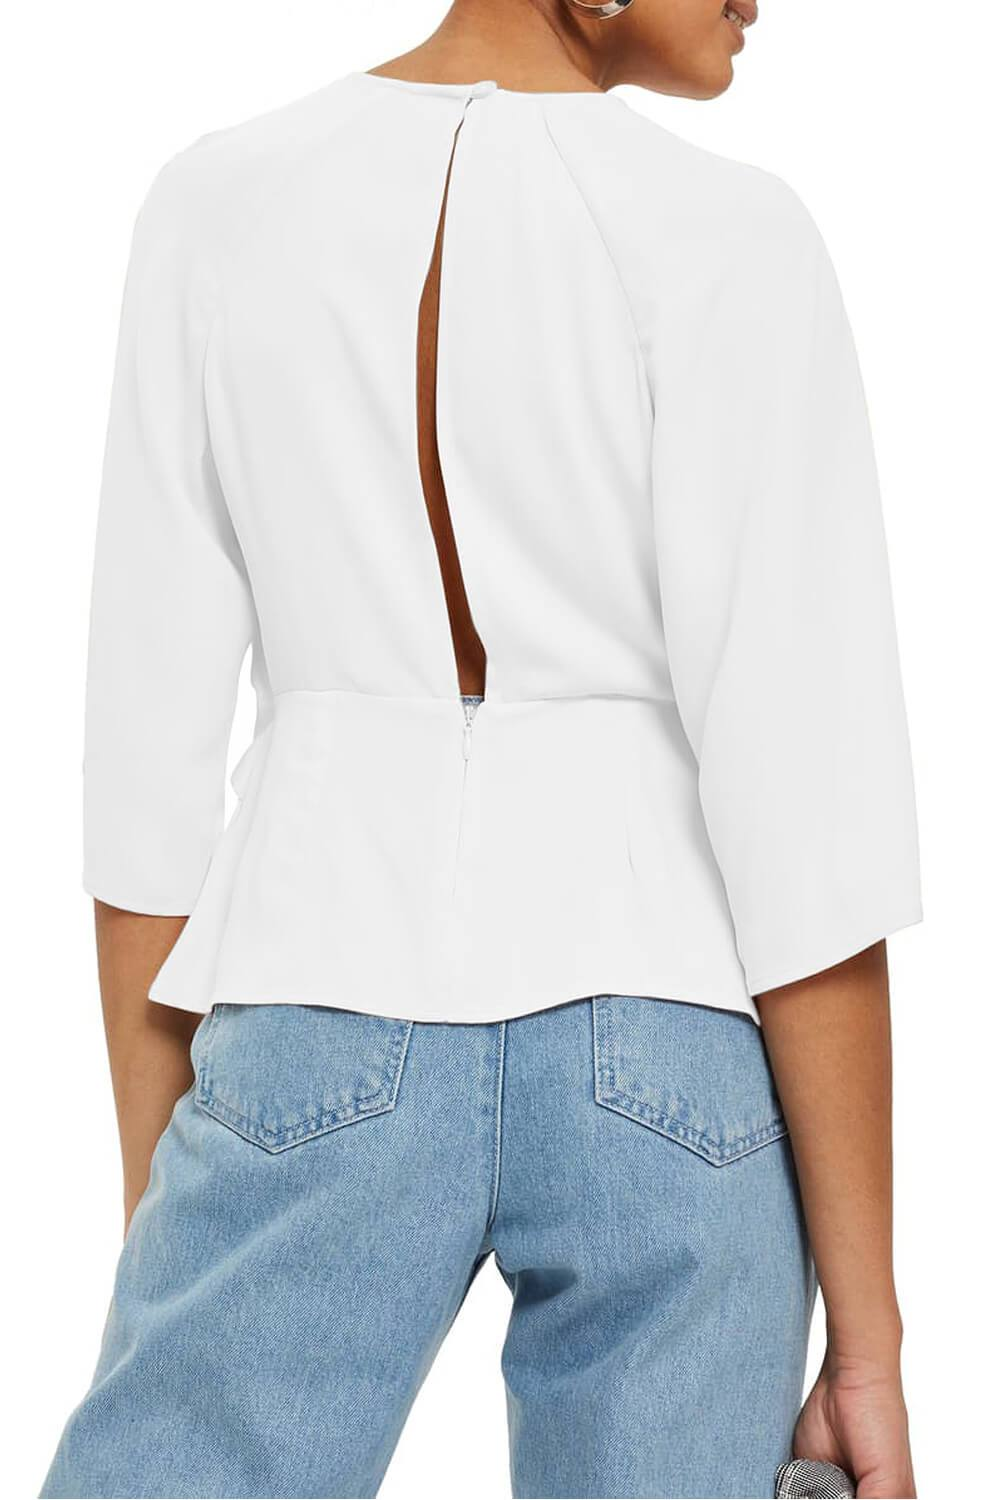 White Waist Tie Front Flare Sleeve Blouse-Tops, Blouses & Shirts-Azura Exchange